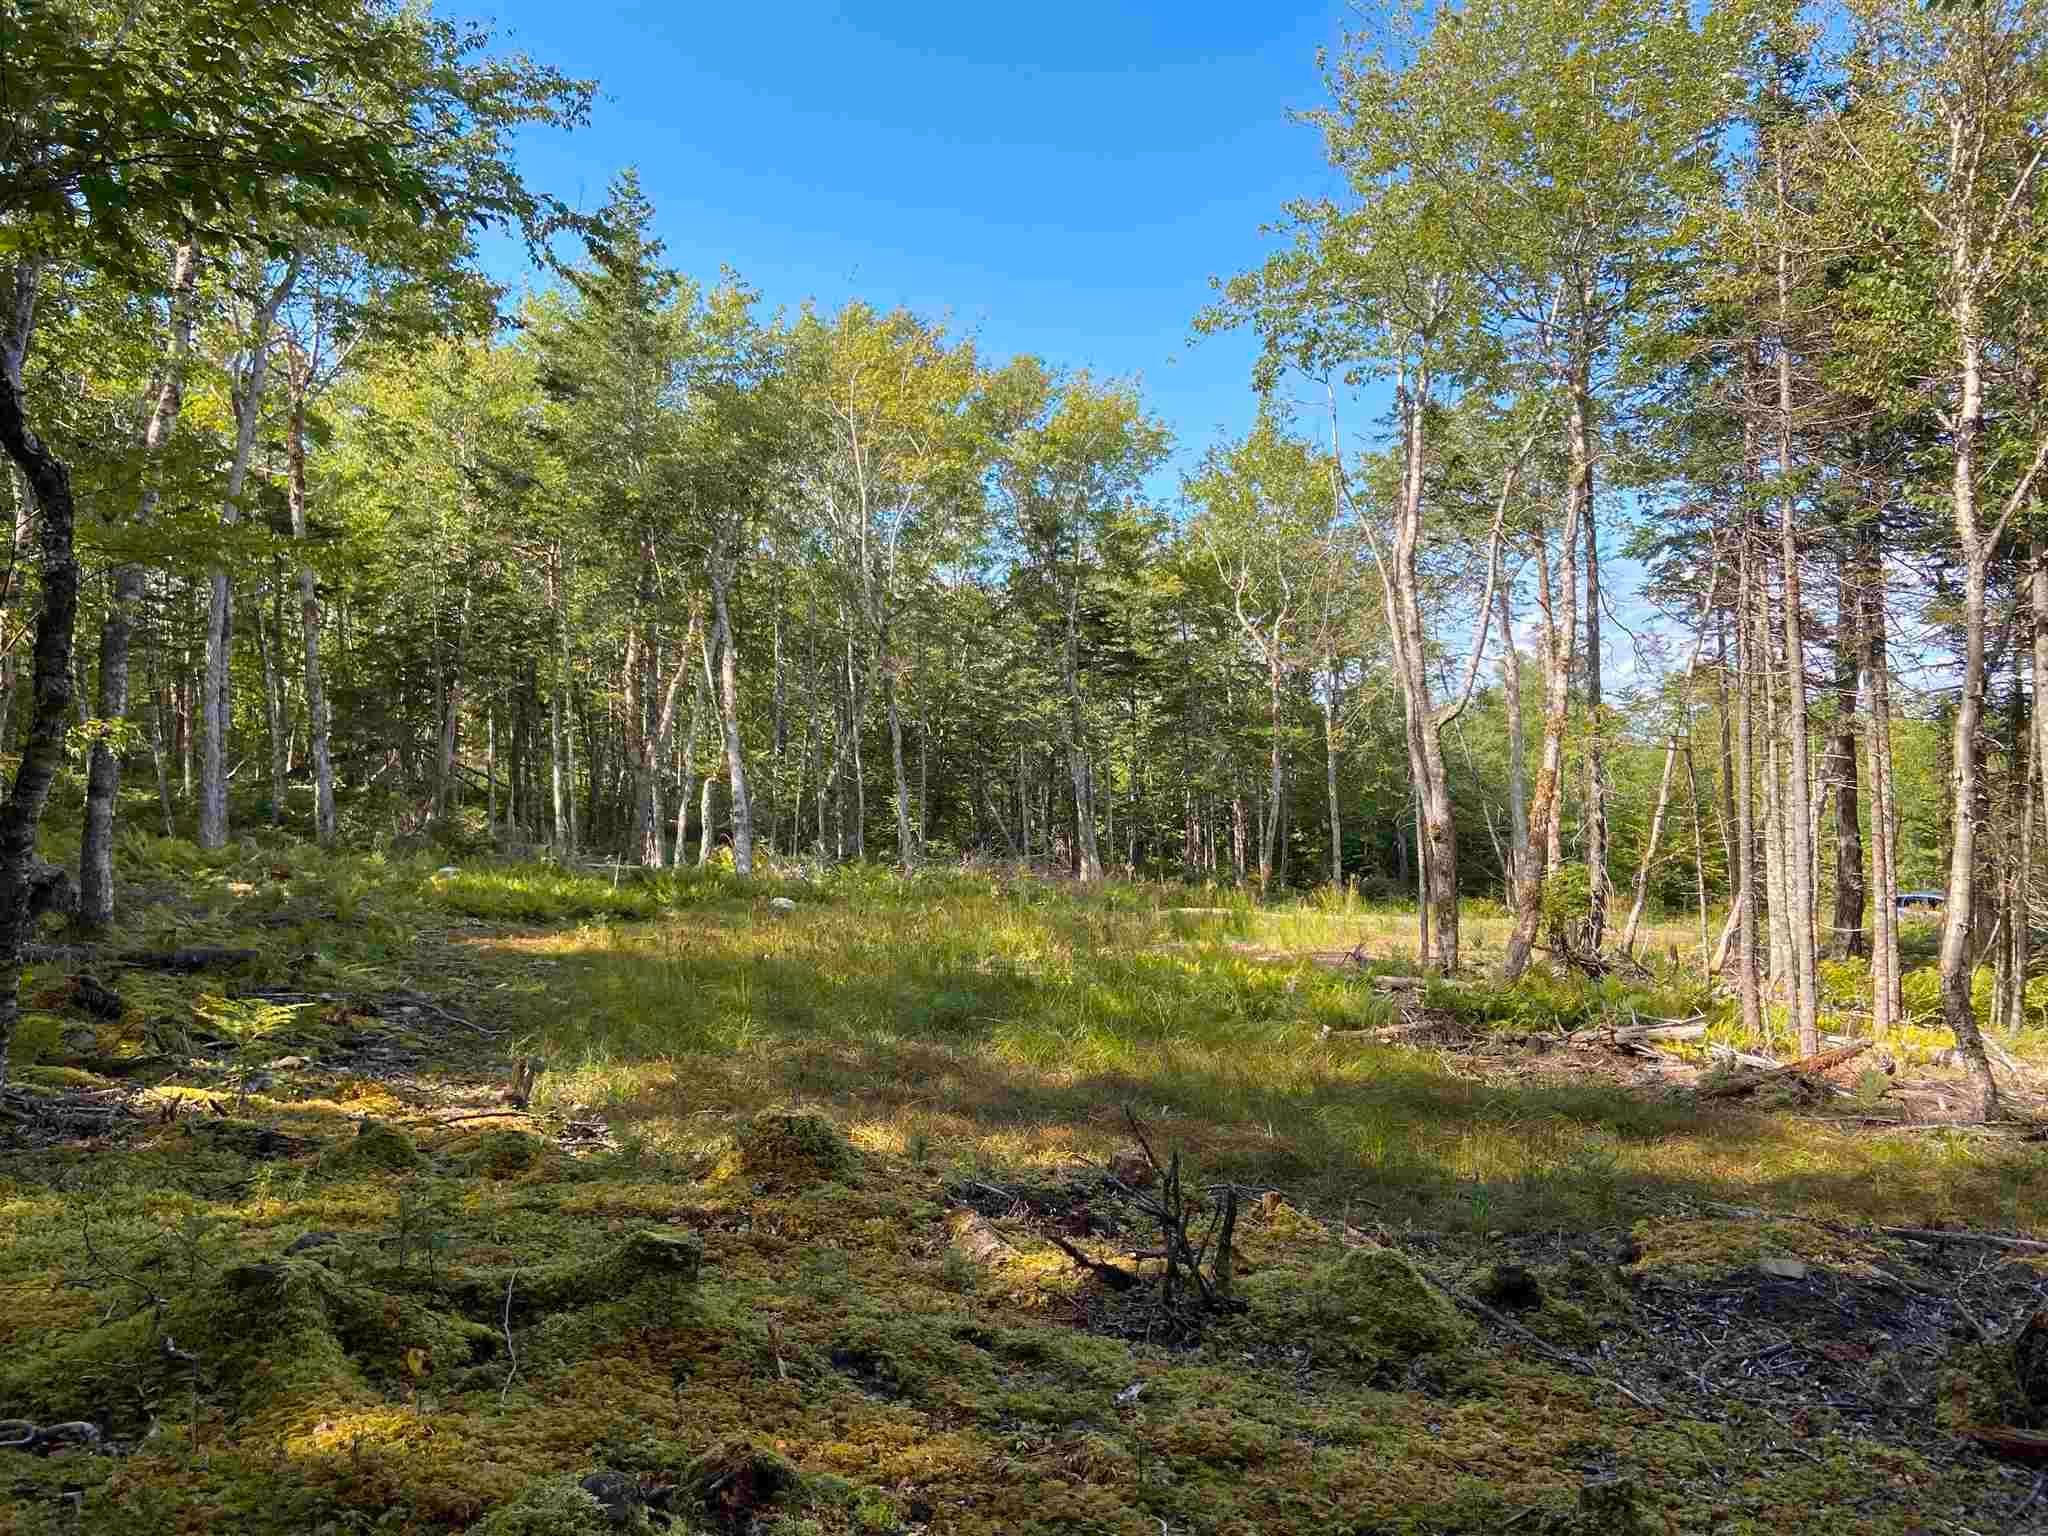 Main Photo: Lot 35 Wall Street in Cape George: 305-Richmond County / St. Peters & Area Vacant Land for sale (Highland Region)  : MLS®# 202123287